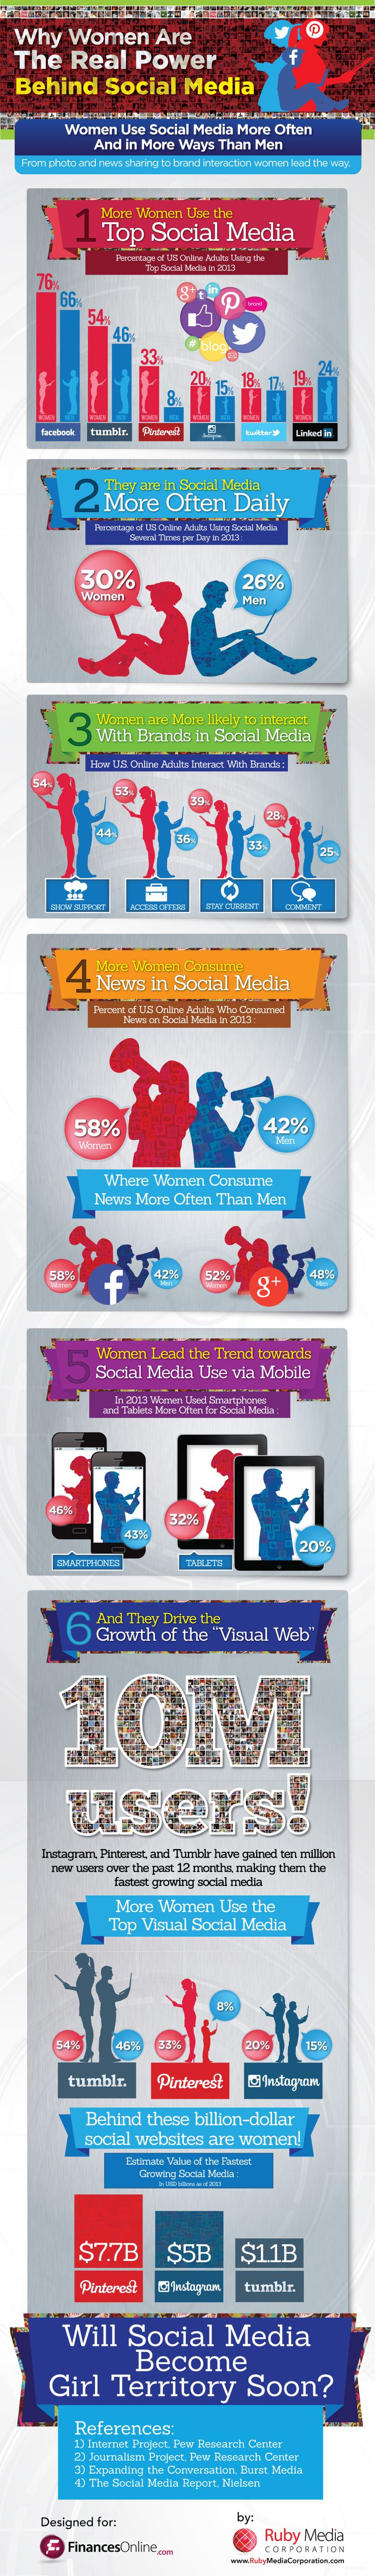 Women Hold the Power in Social Media - Infographic